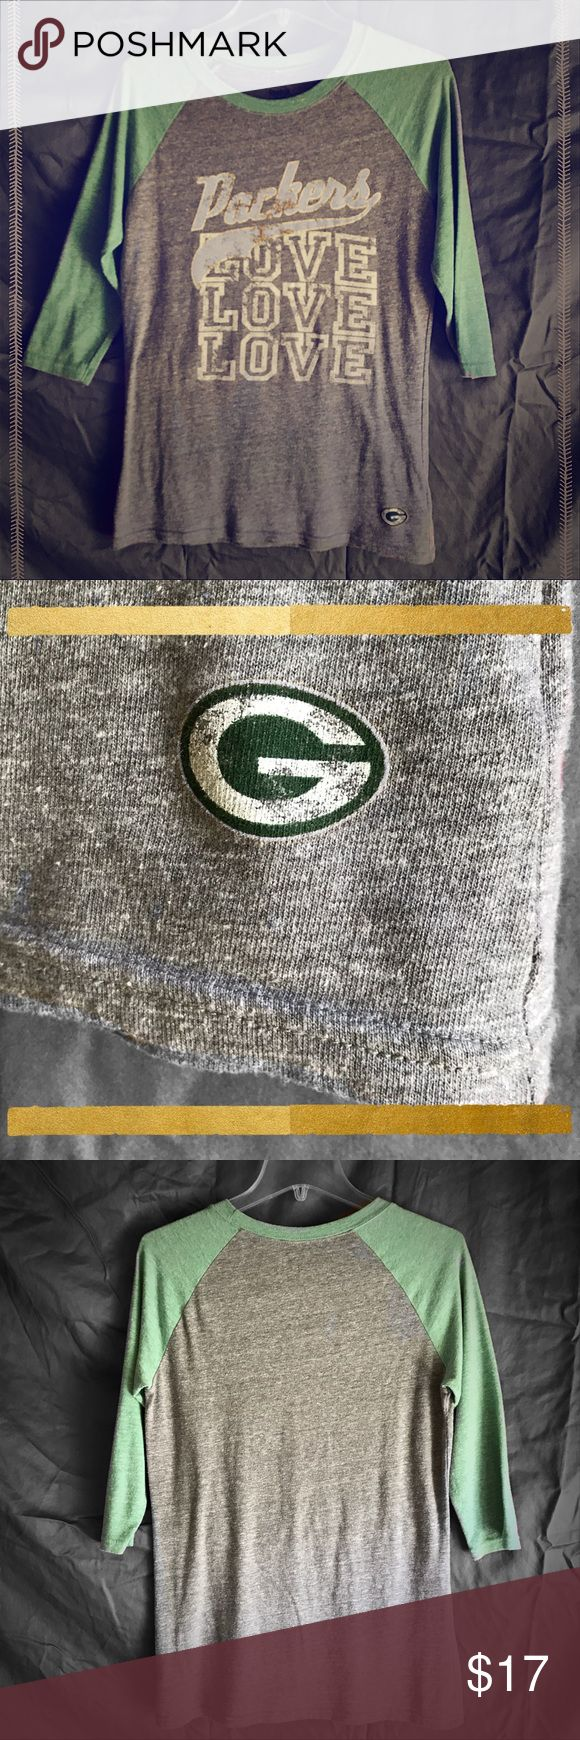 Green Bay Packers 3/4 Sleeve Tee Extremely soft and comfortable way to show how much you love the Packers- at home, at a bar, at a game, at a party, or wherever!  It's made by Reebok, Size L, mint/gray colors, 3/4 Sleeve.  Previous gentle use, but in good condition.  Perfect for an Lady Packer Fan 🏉 Reebok Tops